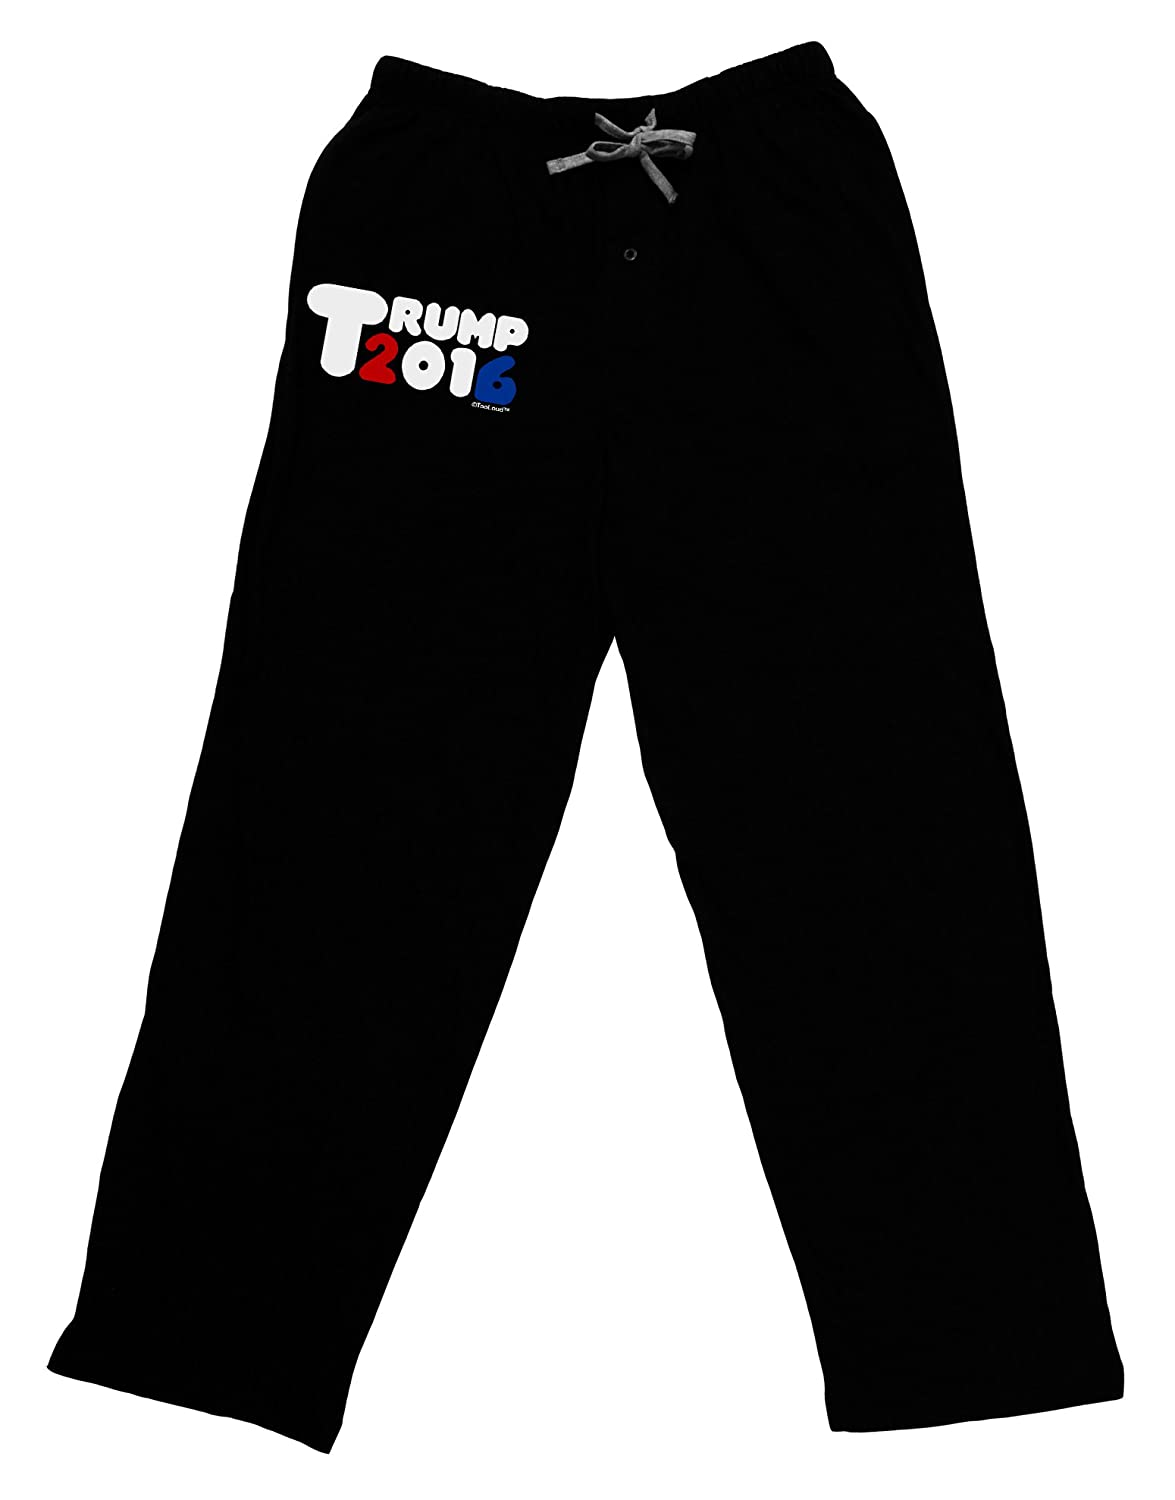 TooLoud Elect Trump 2016 Adult Lounge Pants